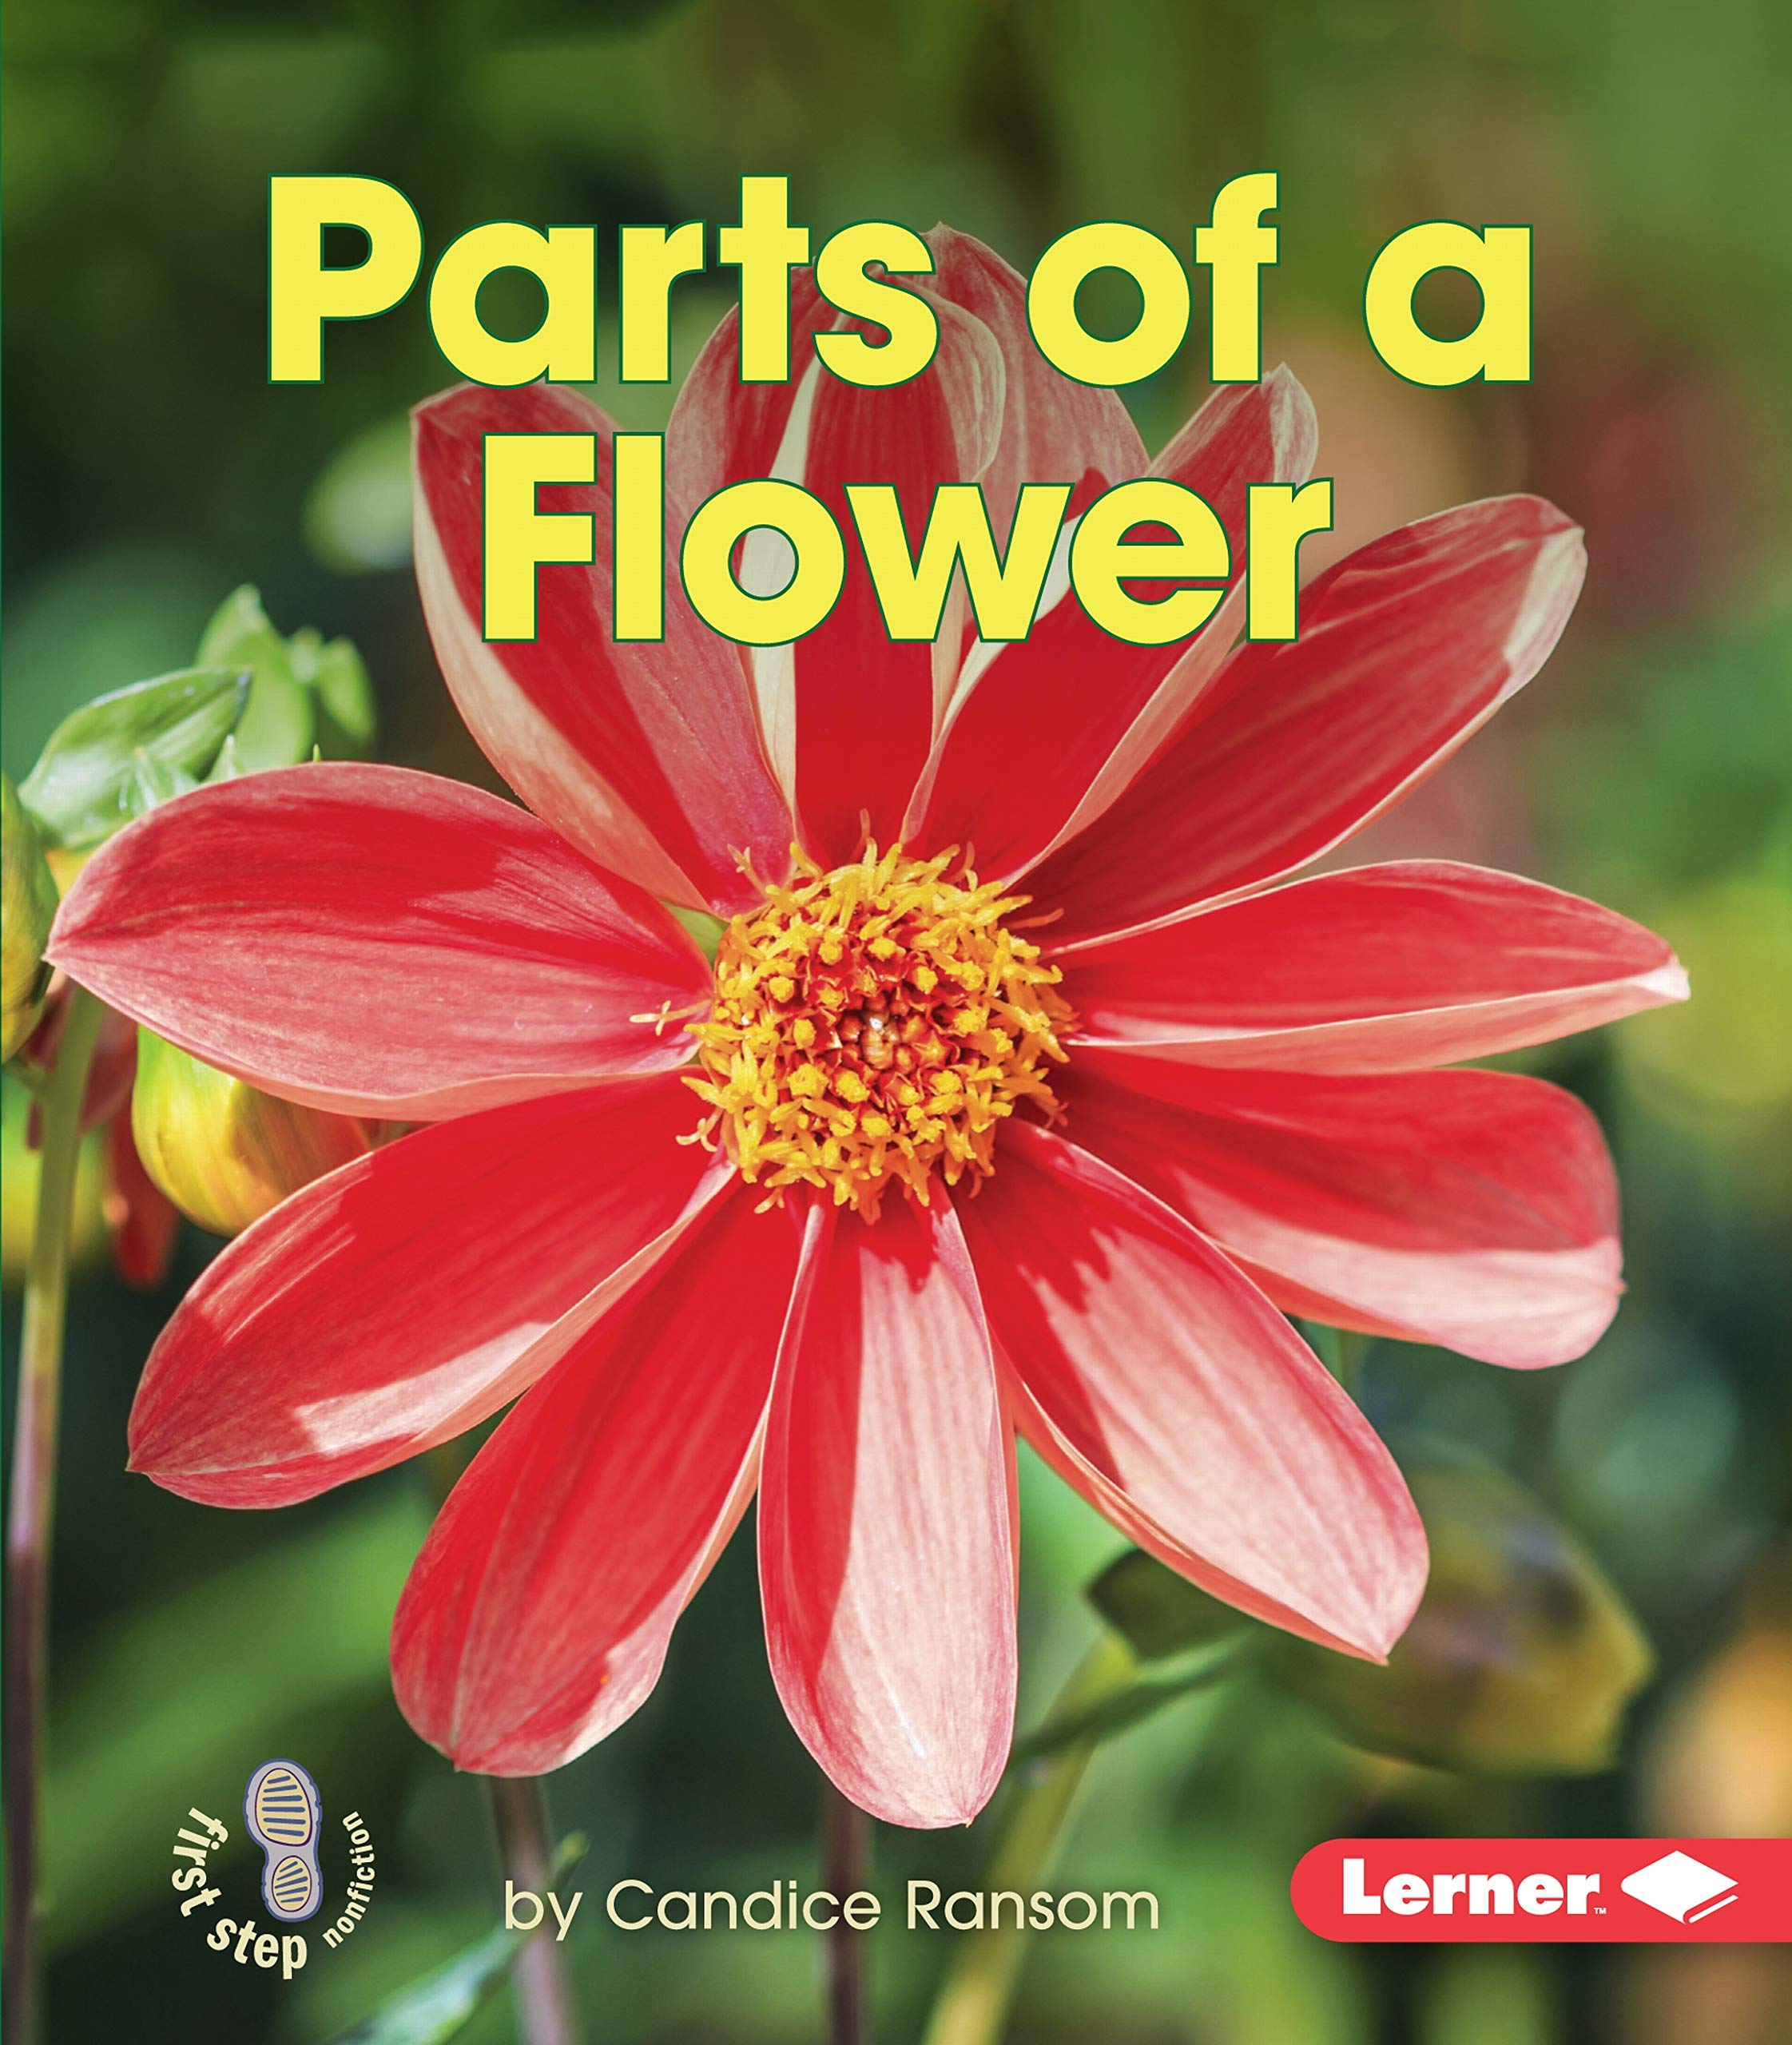 Parts of a flower first step nonfiction first step nonfiction parts of a flower first step nonfiction first step nonfiction pollination candice f ransom 9781467760706 amazon books izmirmasajfo